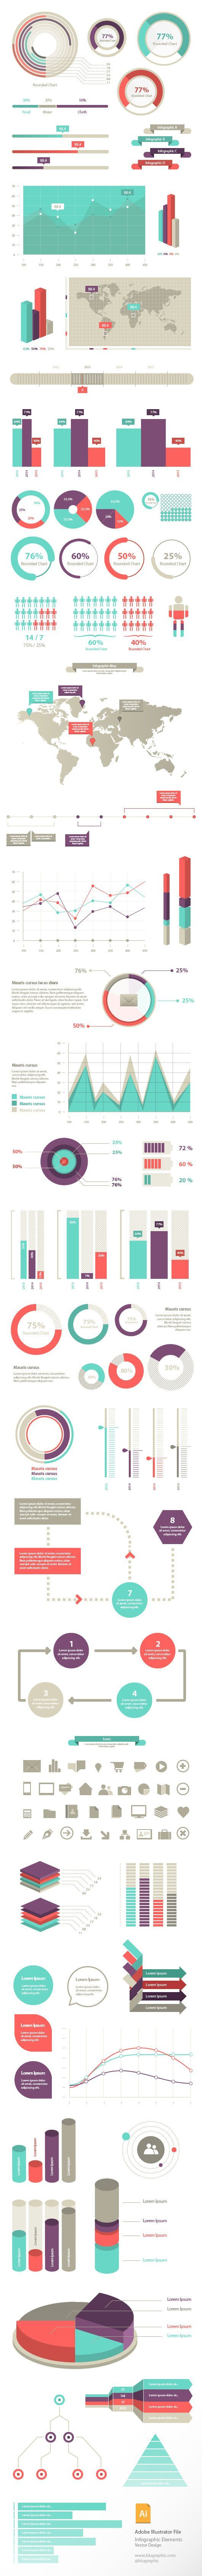 Most commonly used/processed infographic images 100+ Free Infographic Elements: